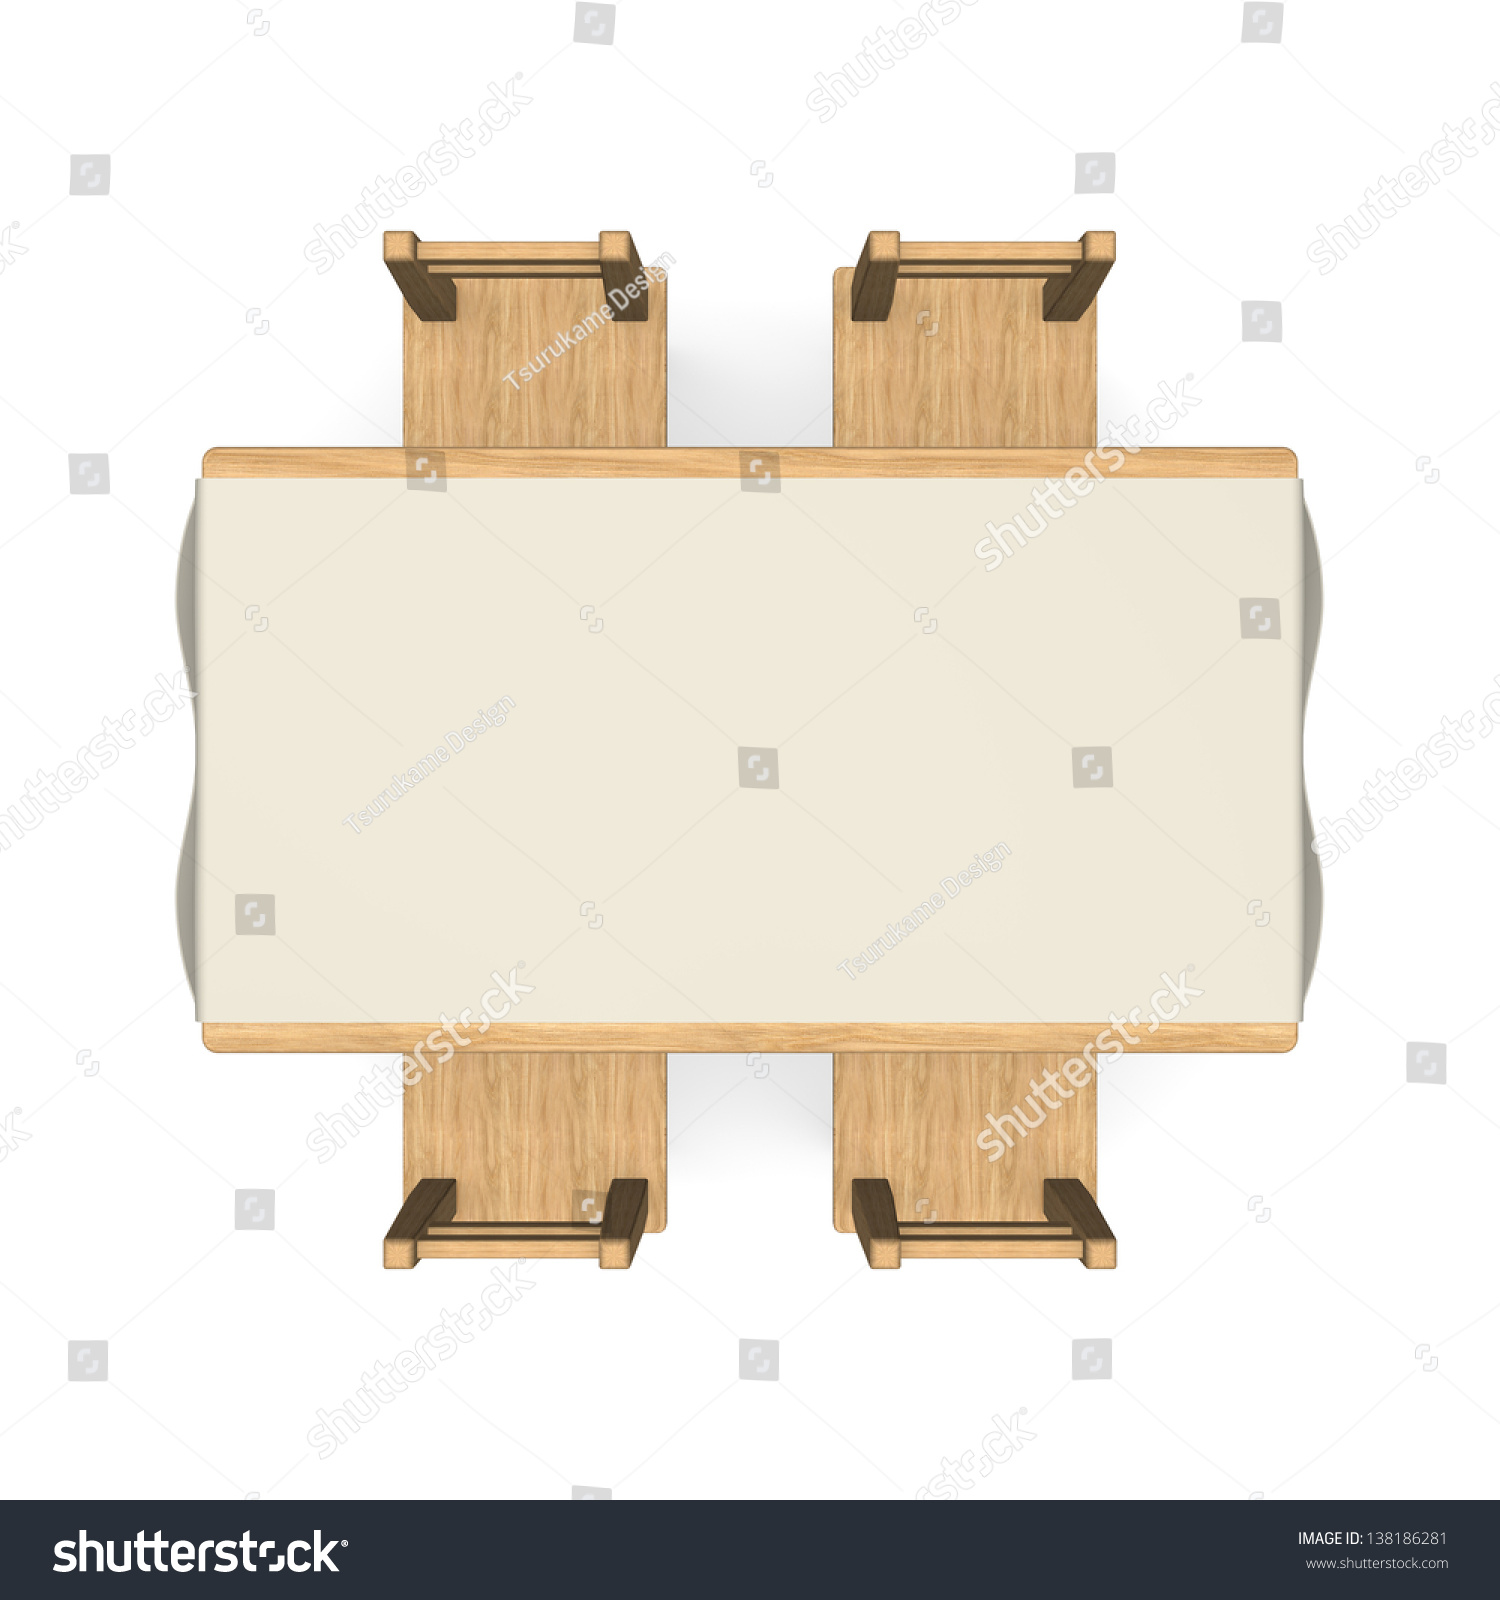 Wooden dining table top view stock illustration